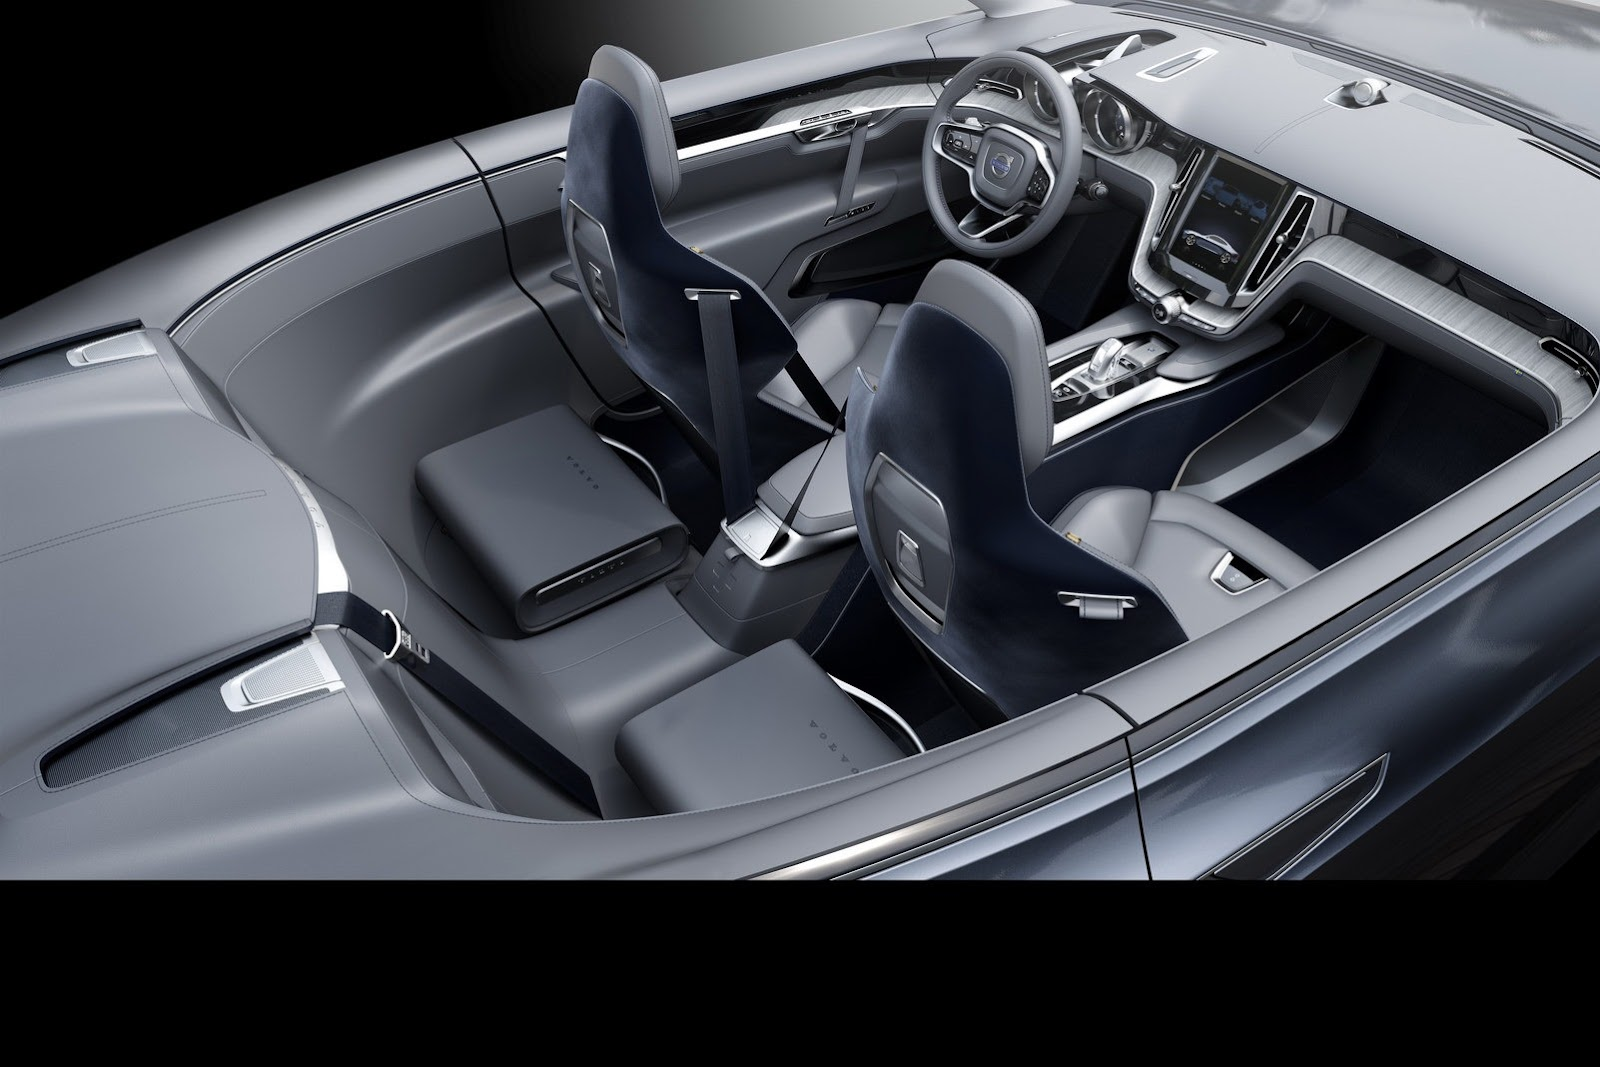 Volvo-Concept-Coupe-55%25255B2%25255D.jpg